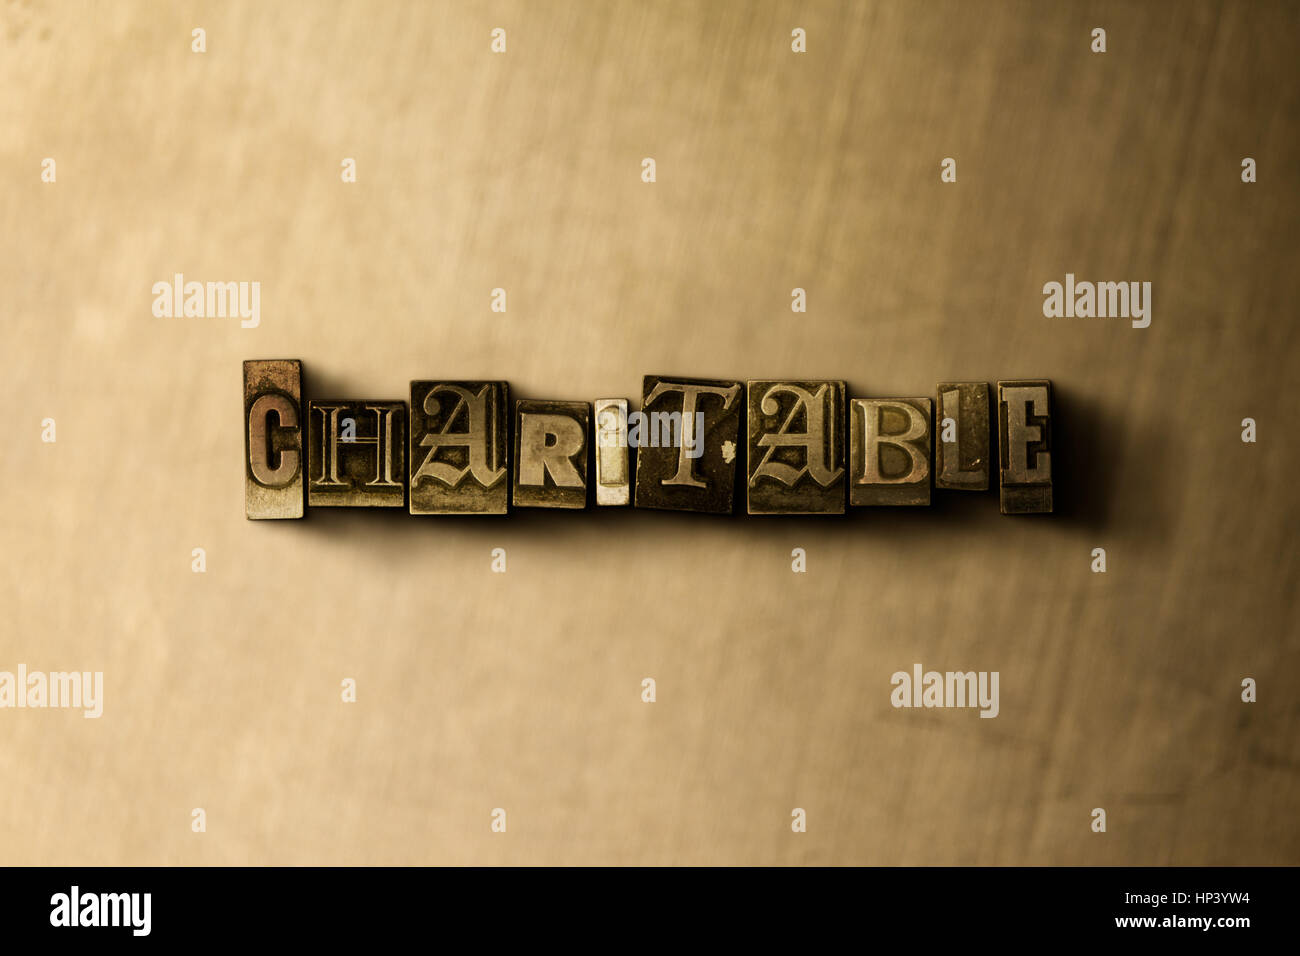 CHARITABLE - close-up of grungy vintage typeset word on metal backdrop. Royalty free stock illustration.  Can be - Stock Image